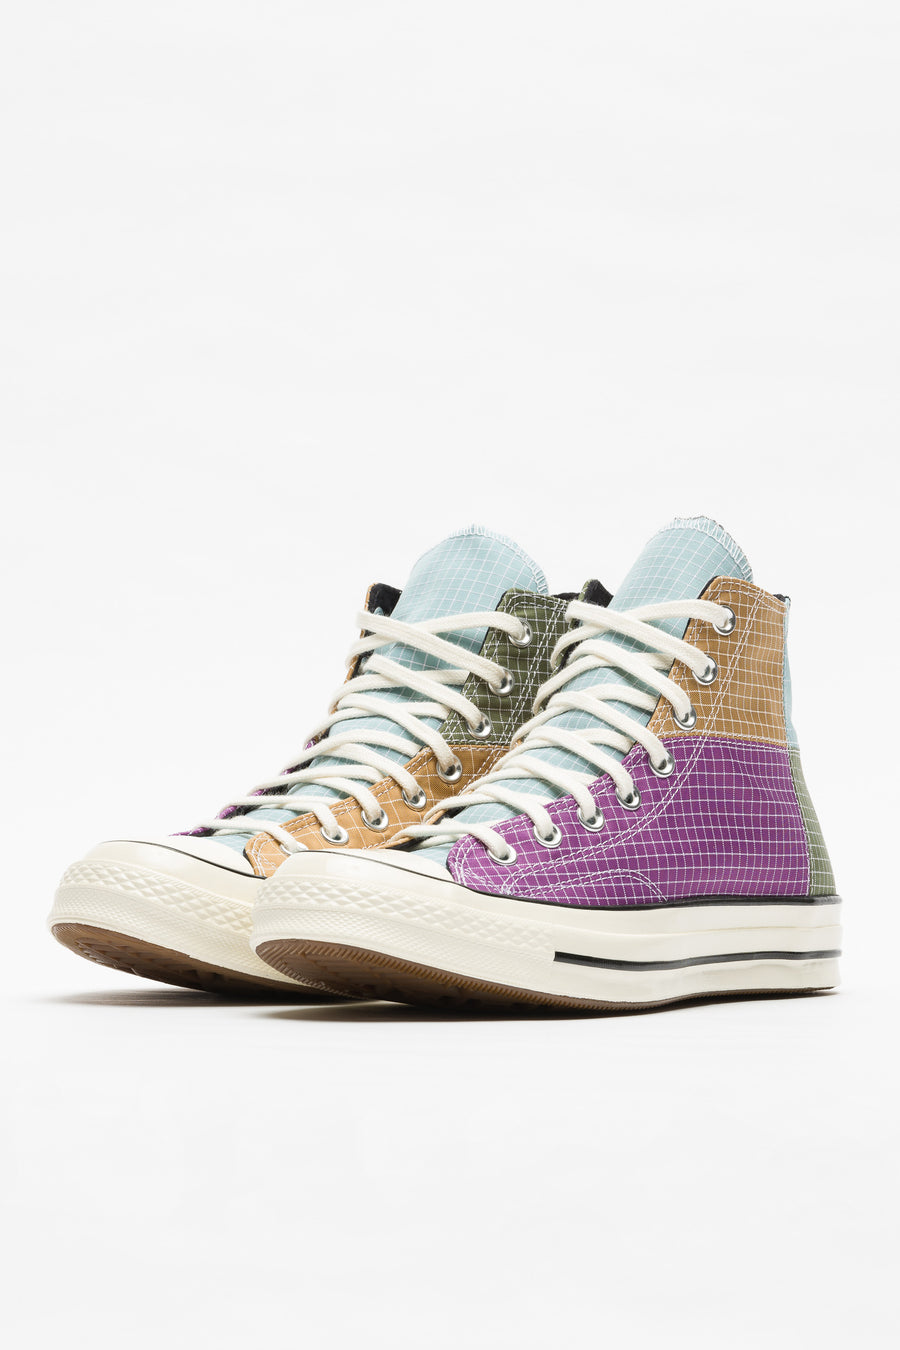 Converse Chuck 70 Hi Panel in Dewberry/Iced Coffee - Notre